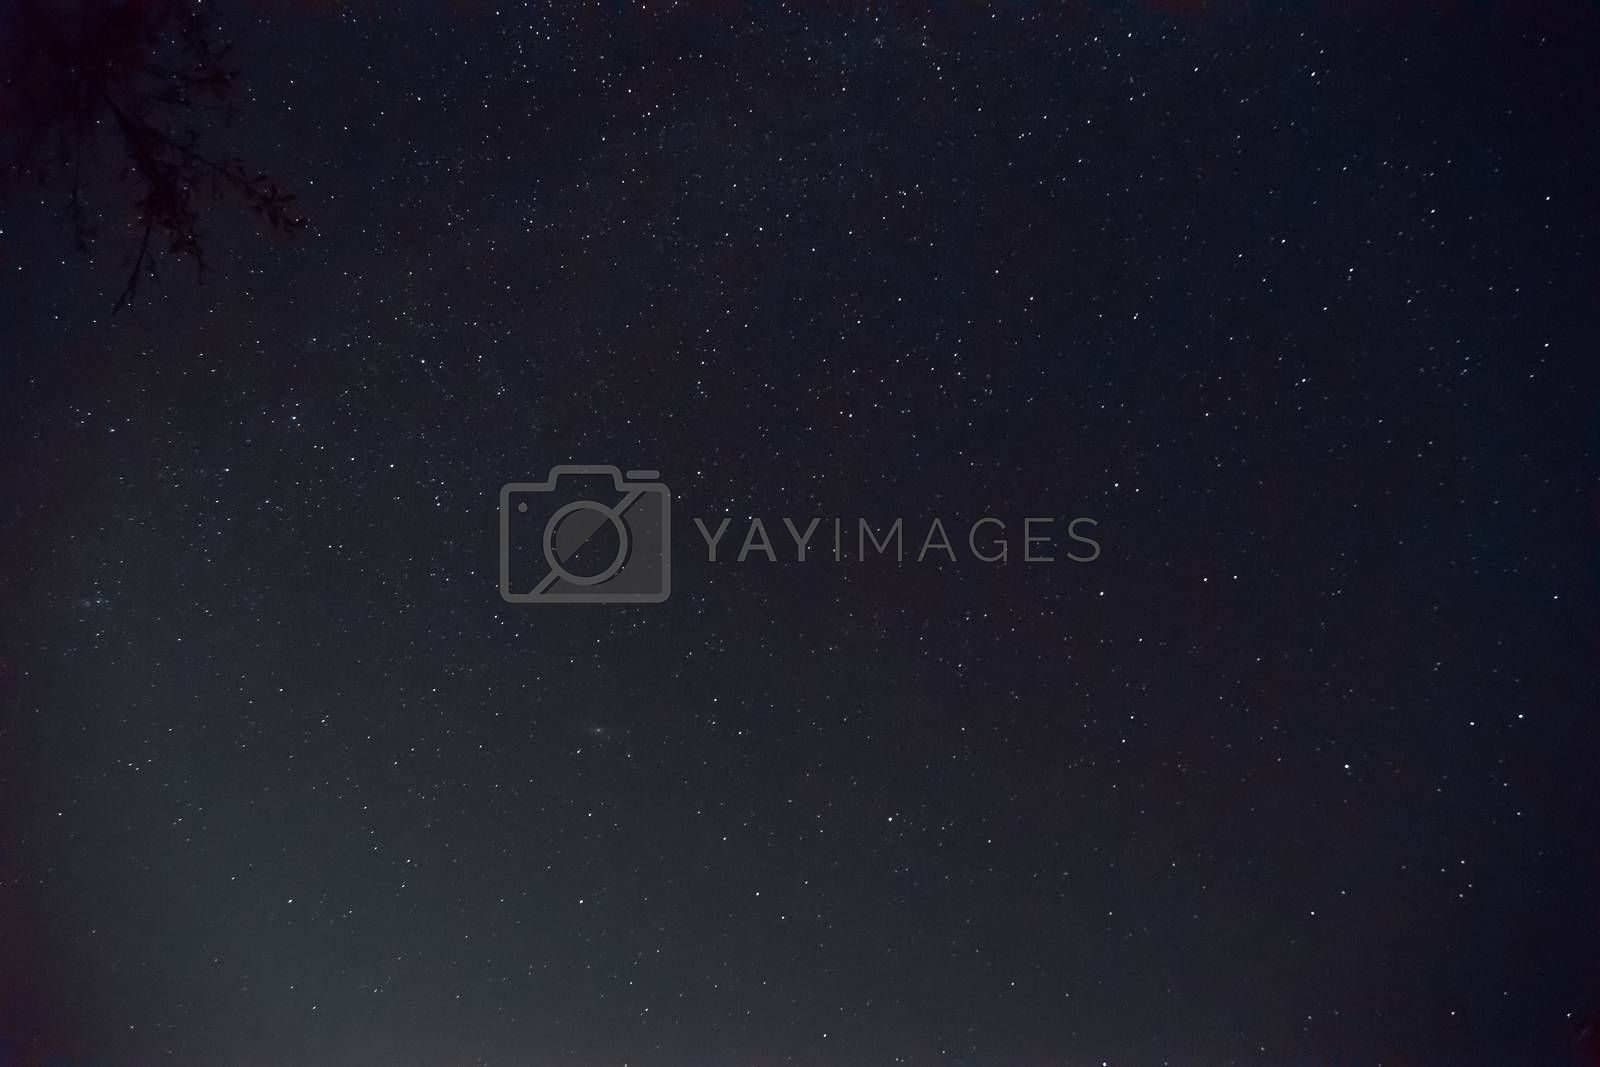 Long exposure night photo. A lot of stars with a lot of constellations. Nebula in sky with tree branch in frame. Night landscape with soft noise effect.